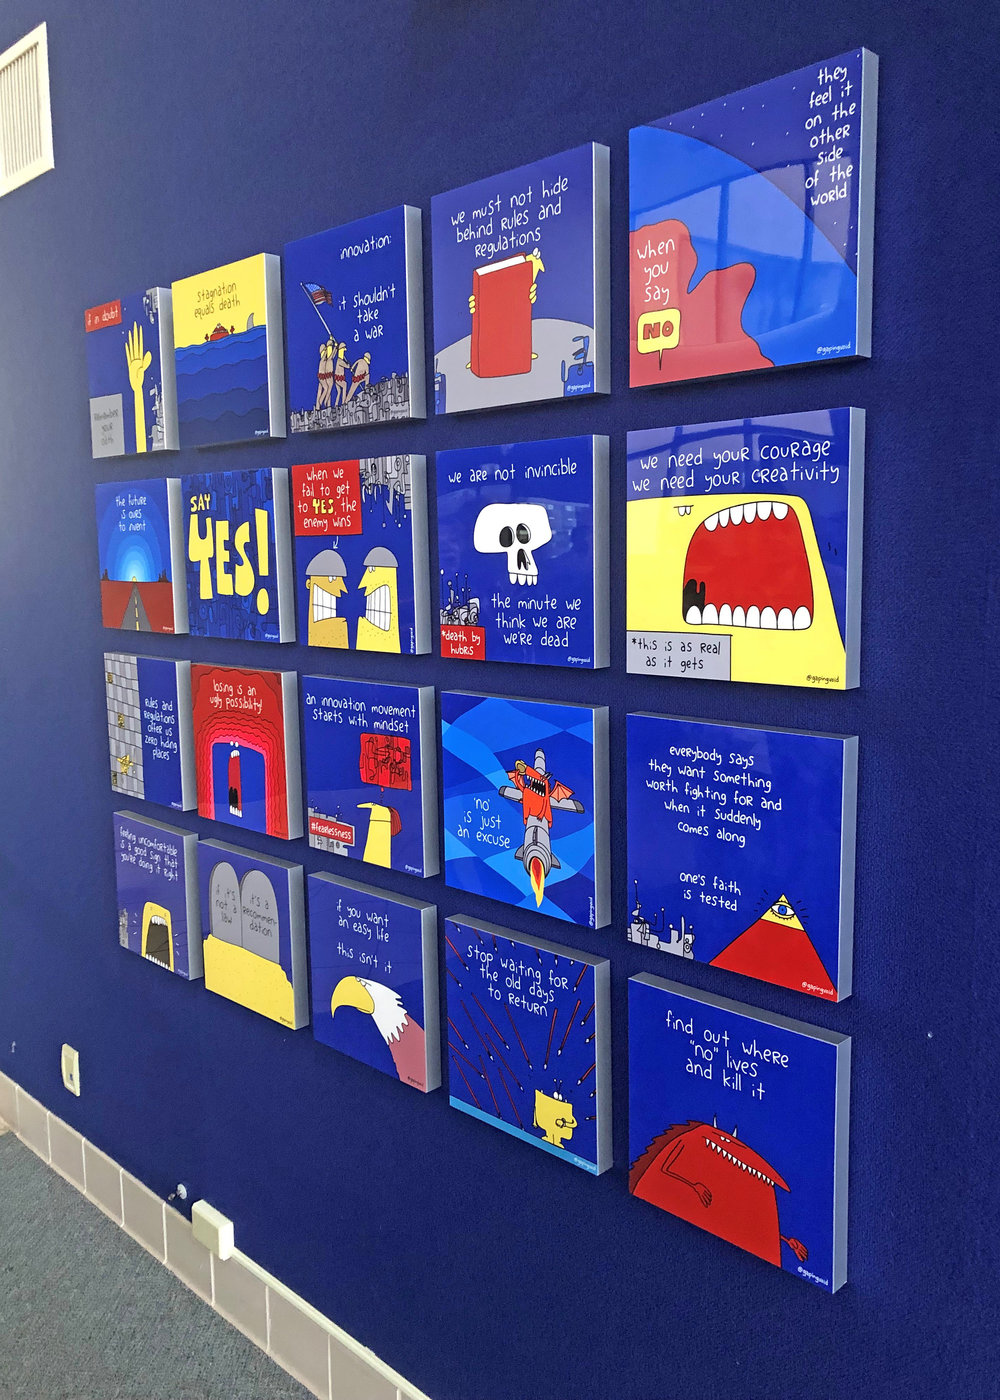 """One of 25 planned art installations across the base, an """"Innovation Culture Wall"""" was revealed to attendees of a """"Feed the Dragon"""" campaign roadshow at Edwards AFB Jan. 15, 2019. Developed with the assistance of  Gapingvoid Culture Design Group , the wall presents messages of values and purpose, such as, """"We must not hide behind rules and regulations"""" and """"'No' is just an excuse."""" U.S. Air Force photo by Kenji Thuloweit"""